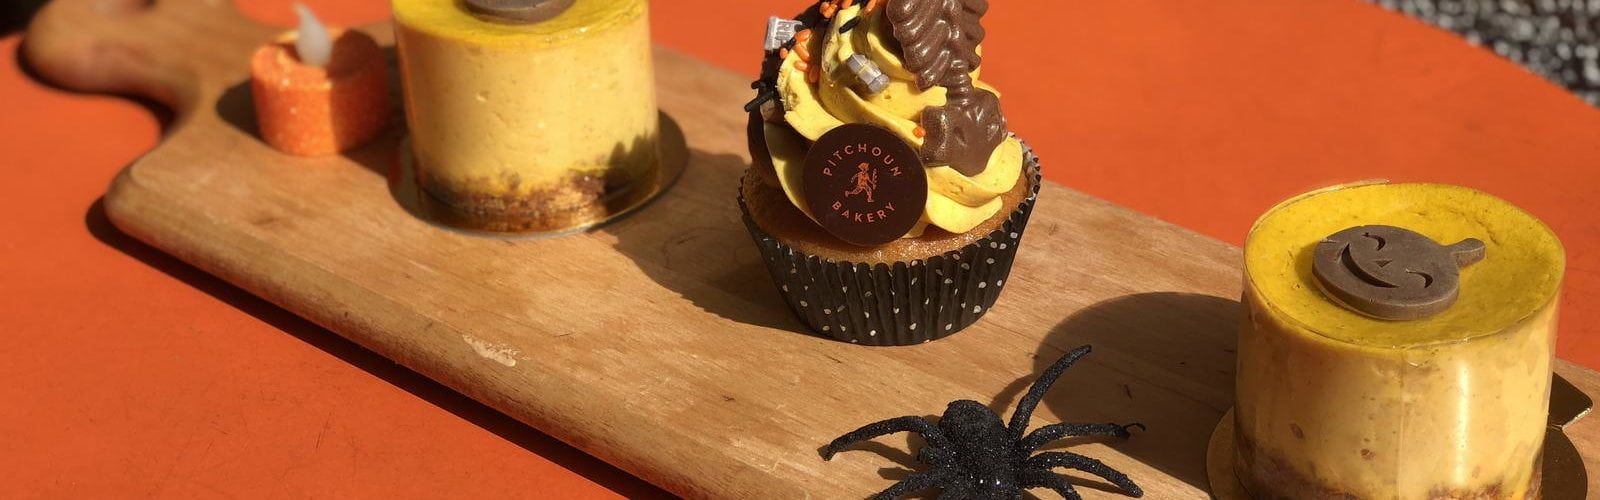 menu-octobre-halloween-pitchoun-bakery-los-angeles10